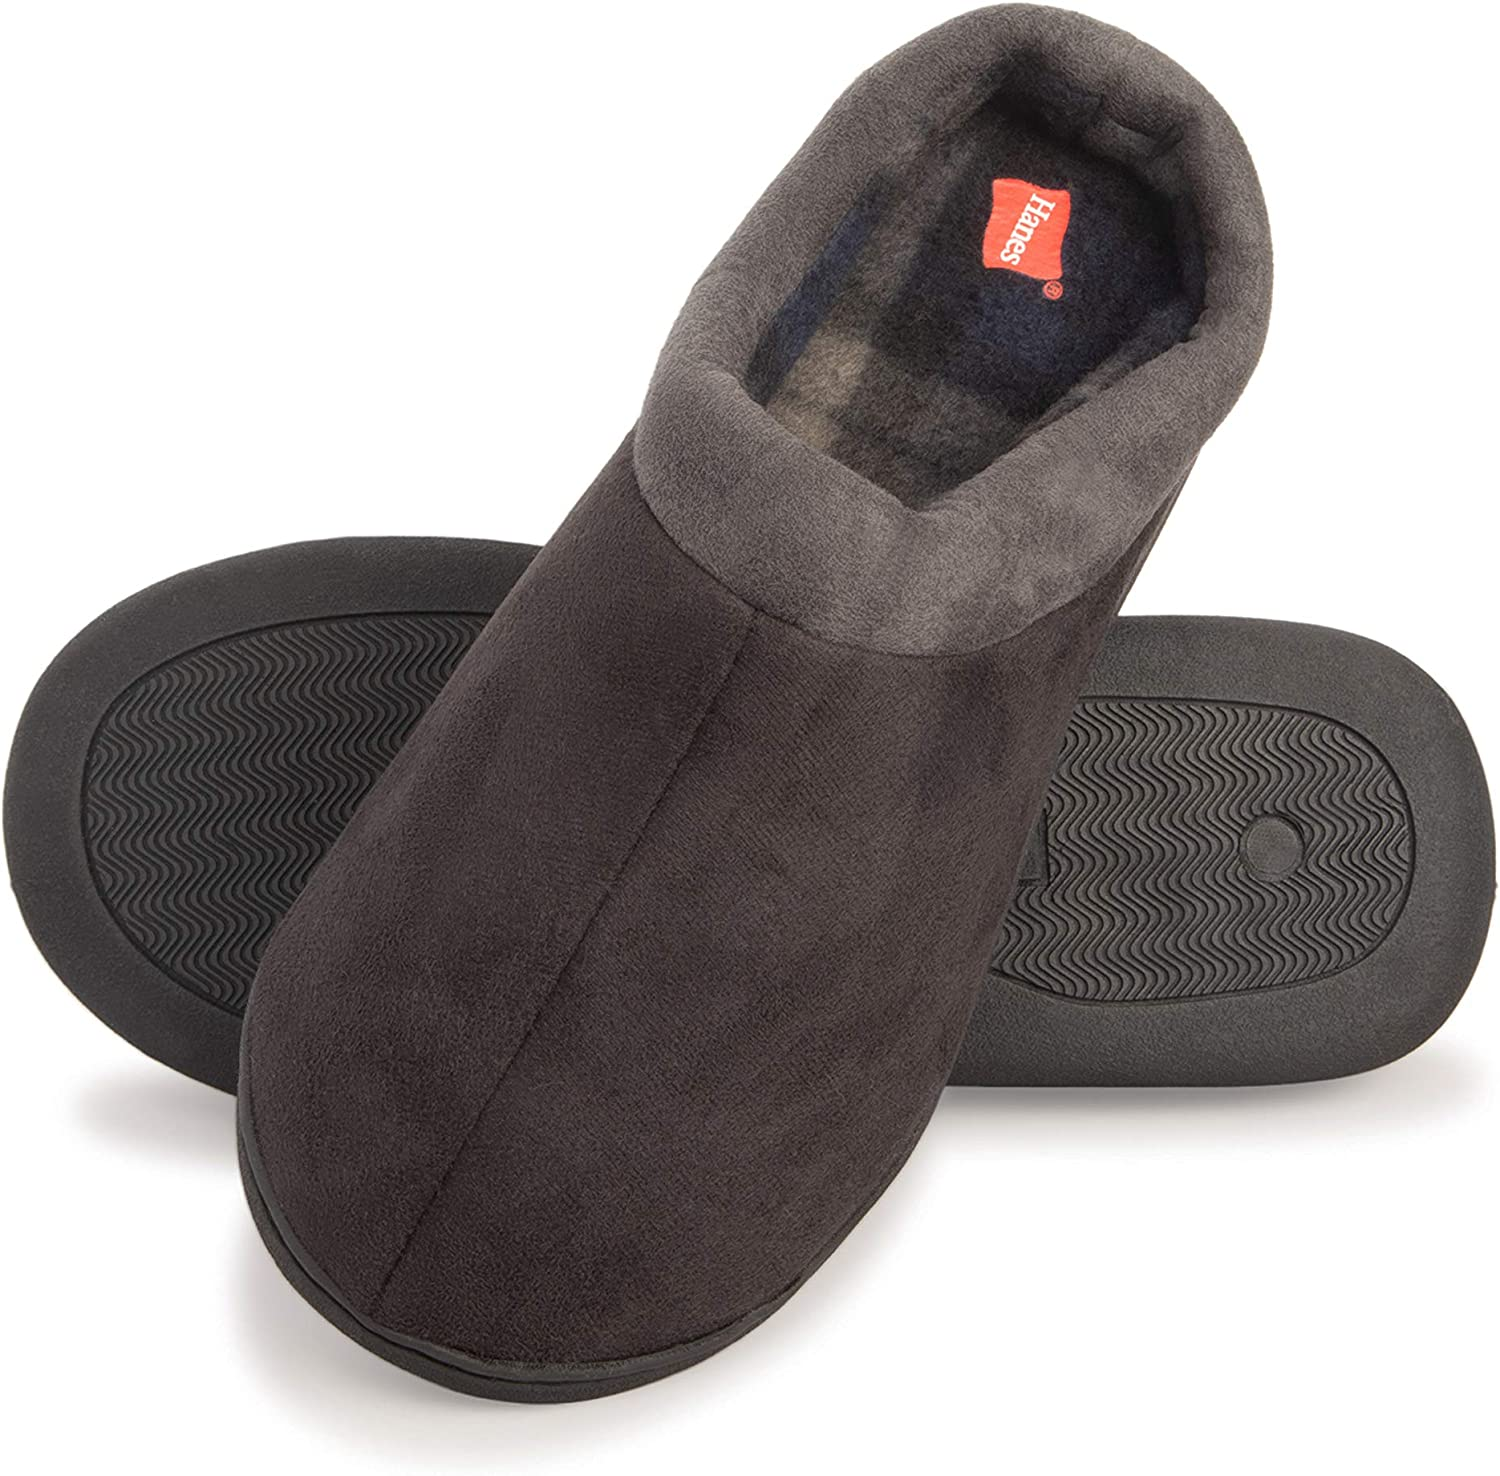 Hanes Men's Memory Foam Indoor Outdoor Suede Clog Slipper Shoe with Fresh Iq